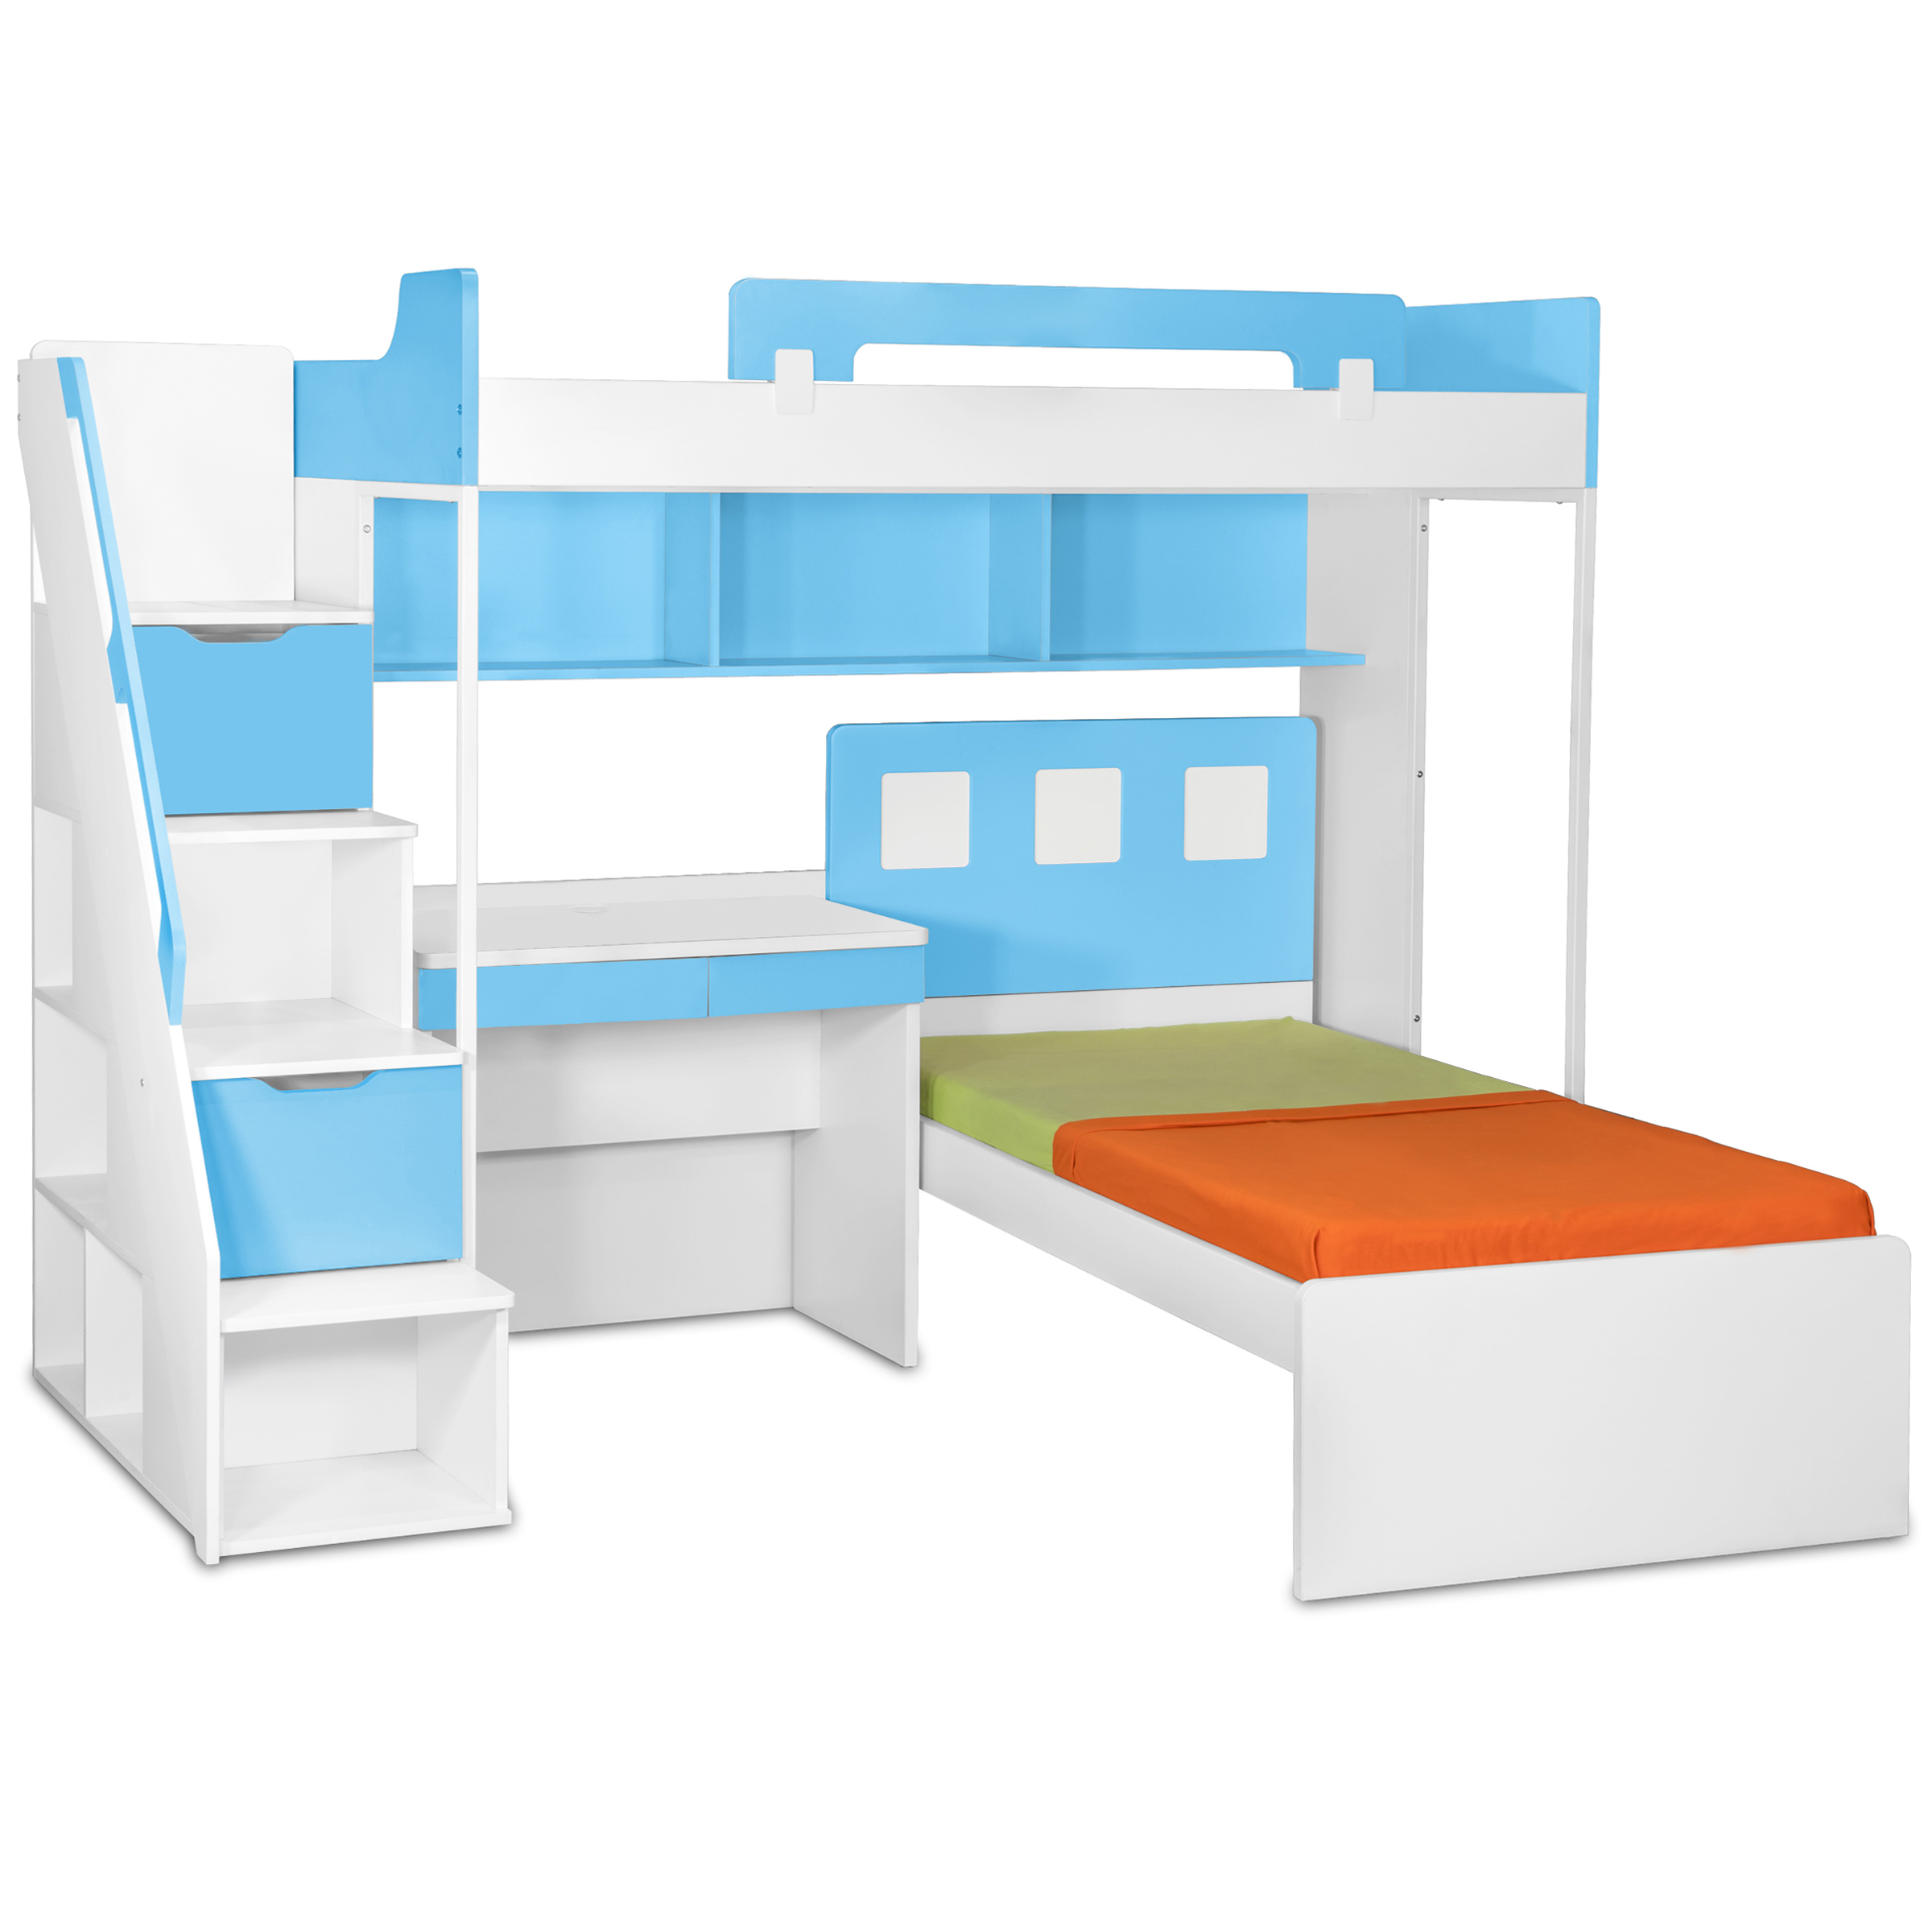 Online Shopping Study Table: Milano Bunk Bed With Study Table